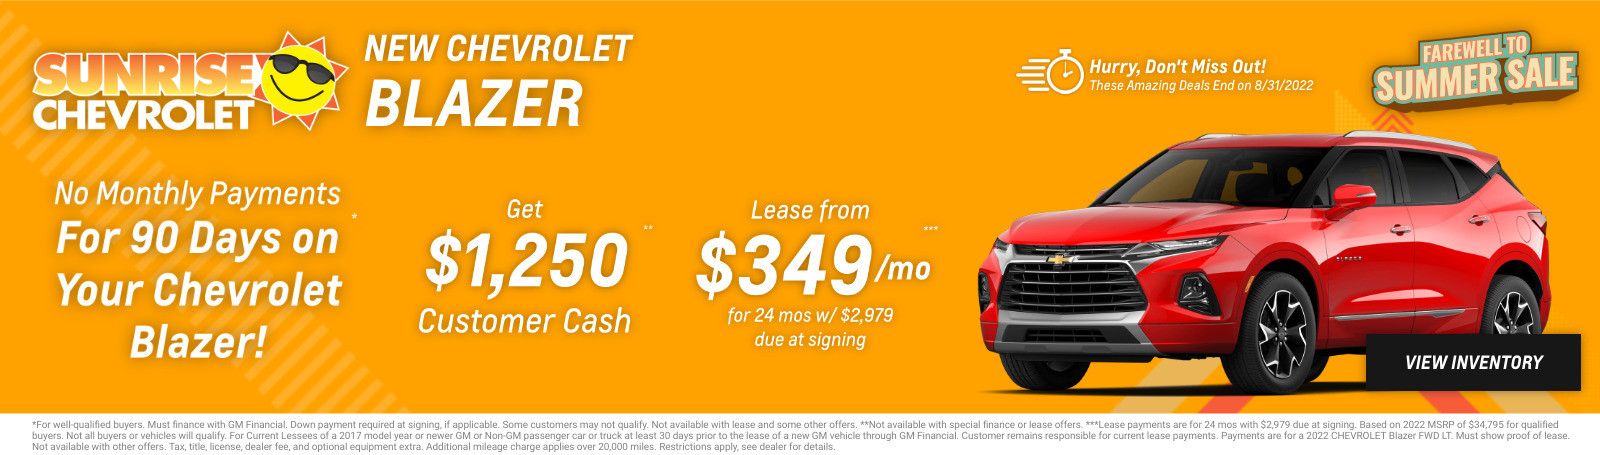 New Chevrolet Blazer Current Deals and Offers in Chicago, IL